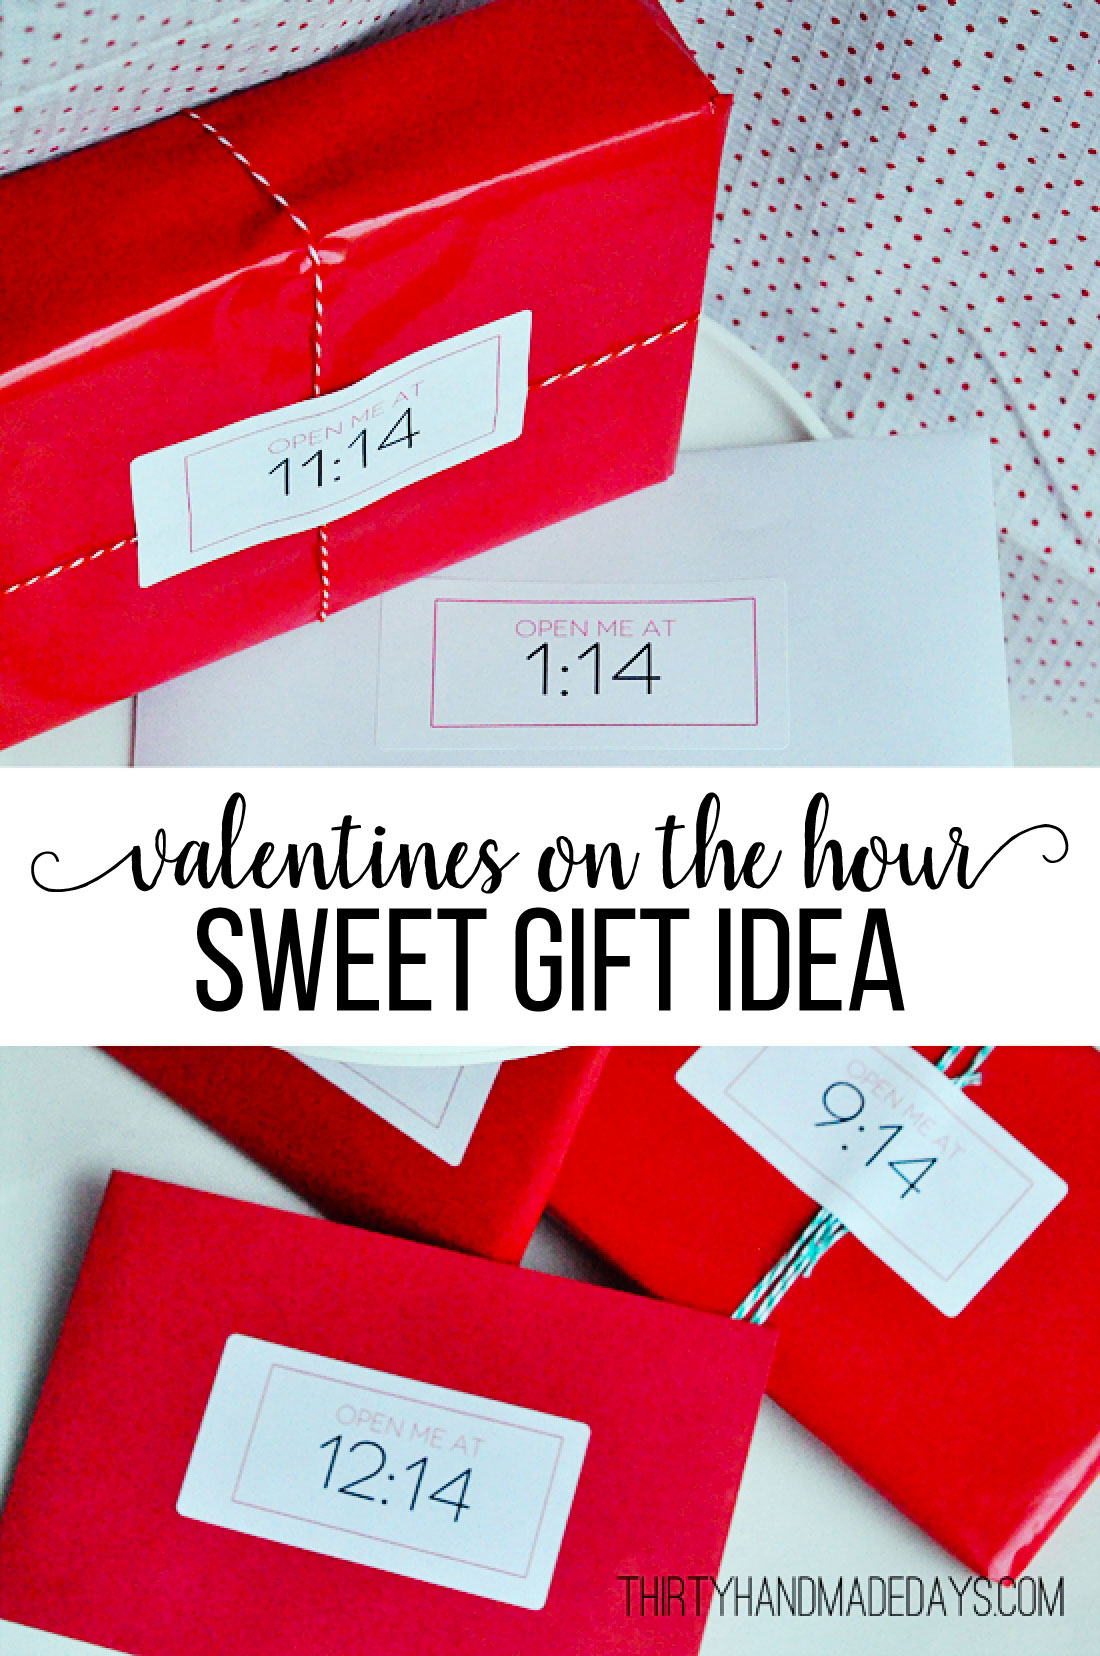 Valentine Ideas On The Hour